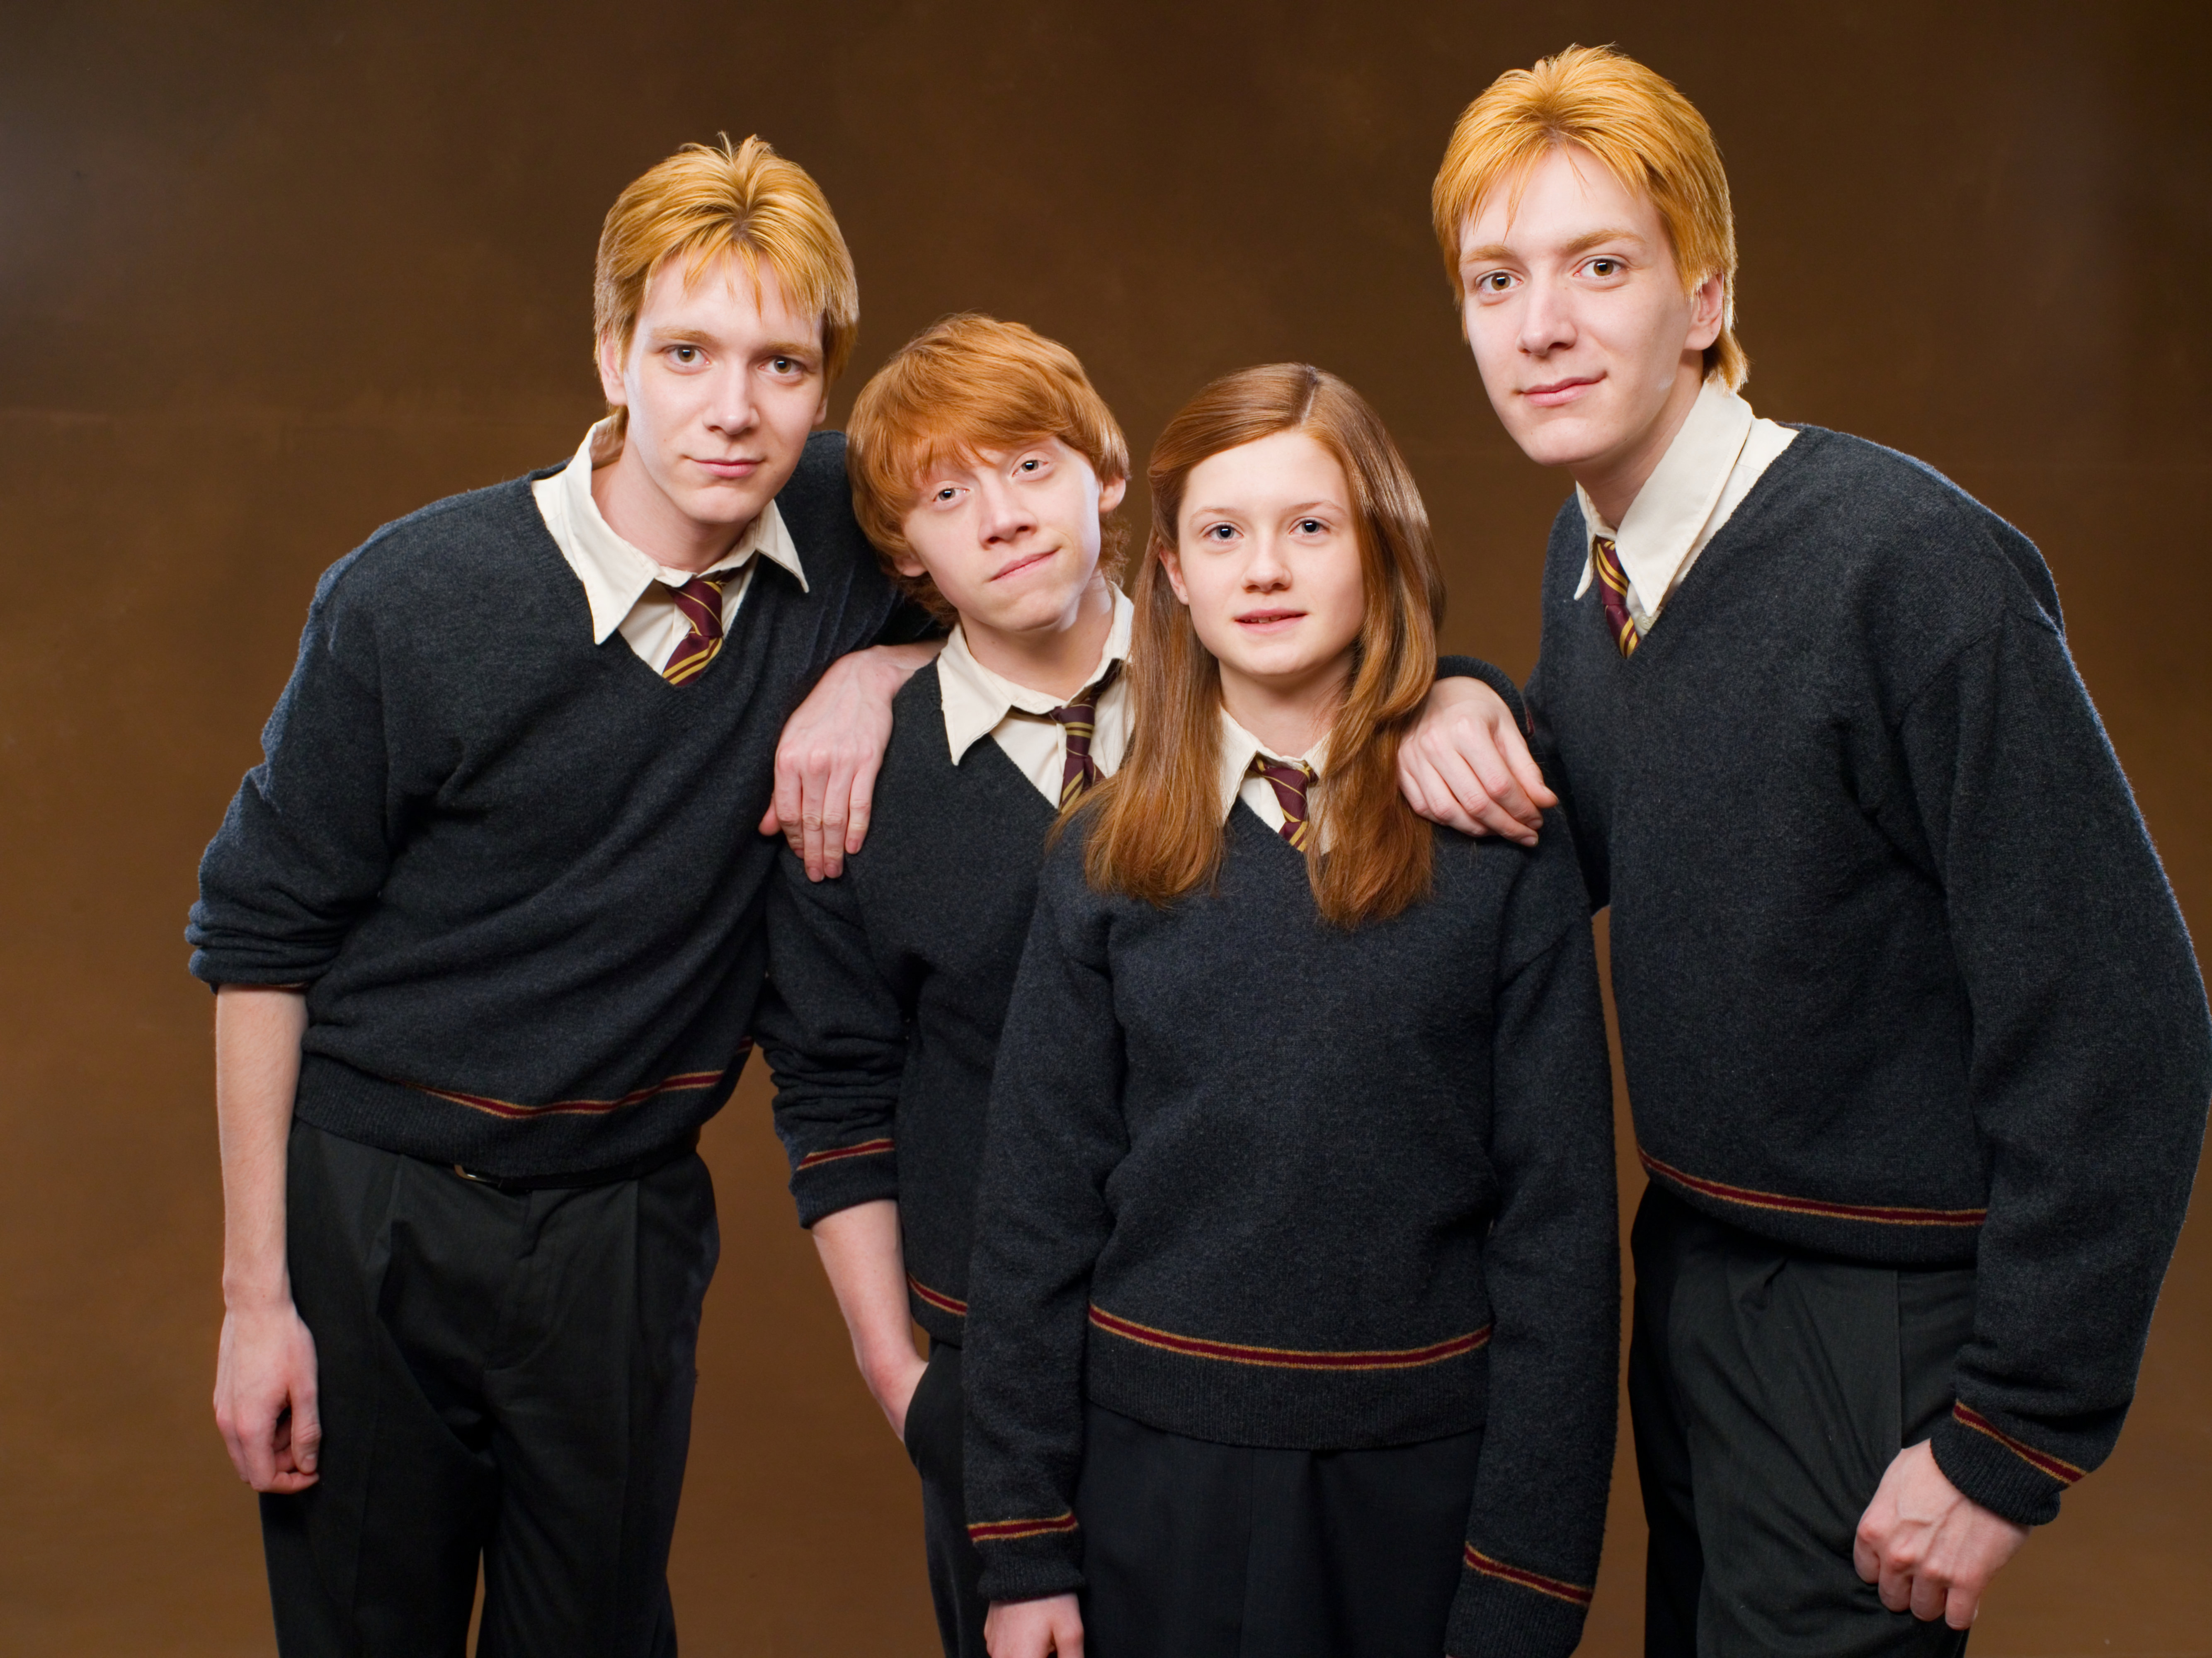 The chapter that made us fall in love with… Ron Weasley